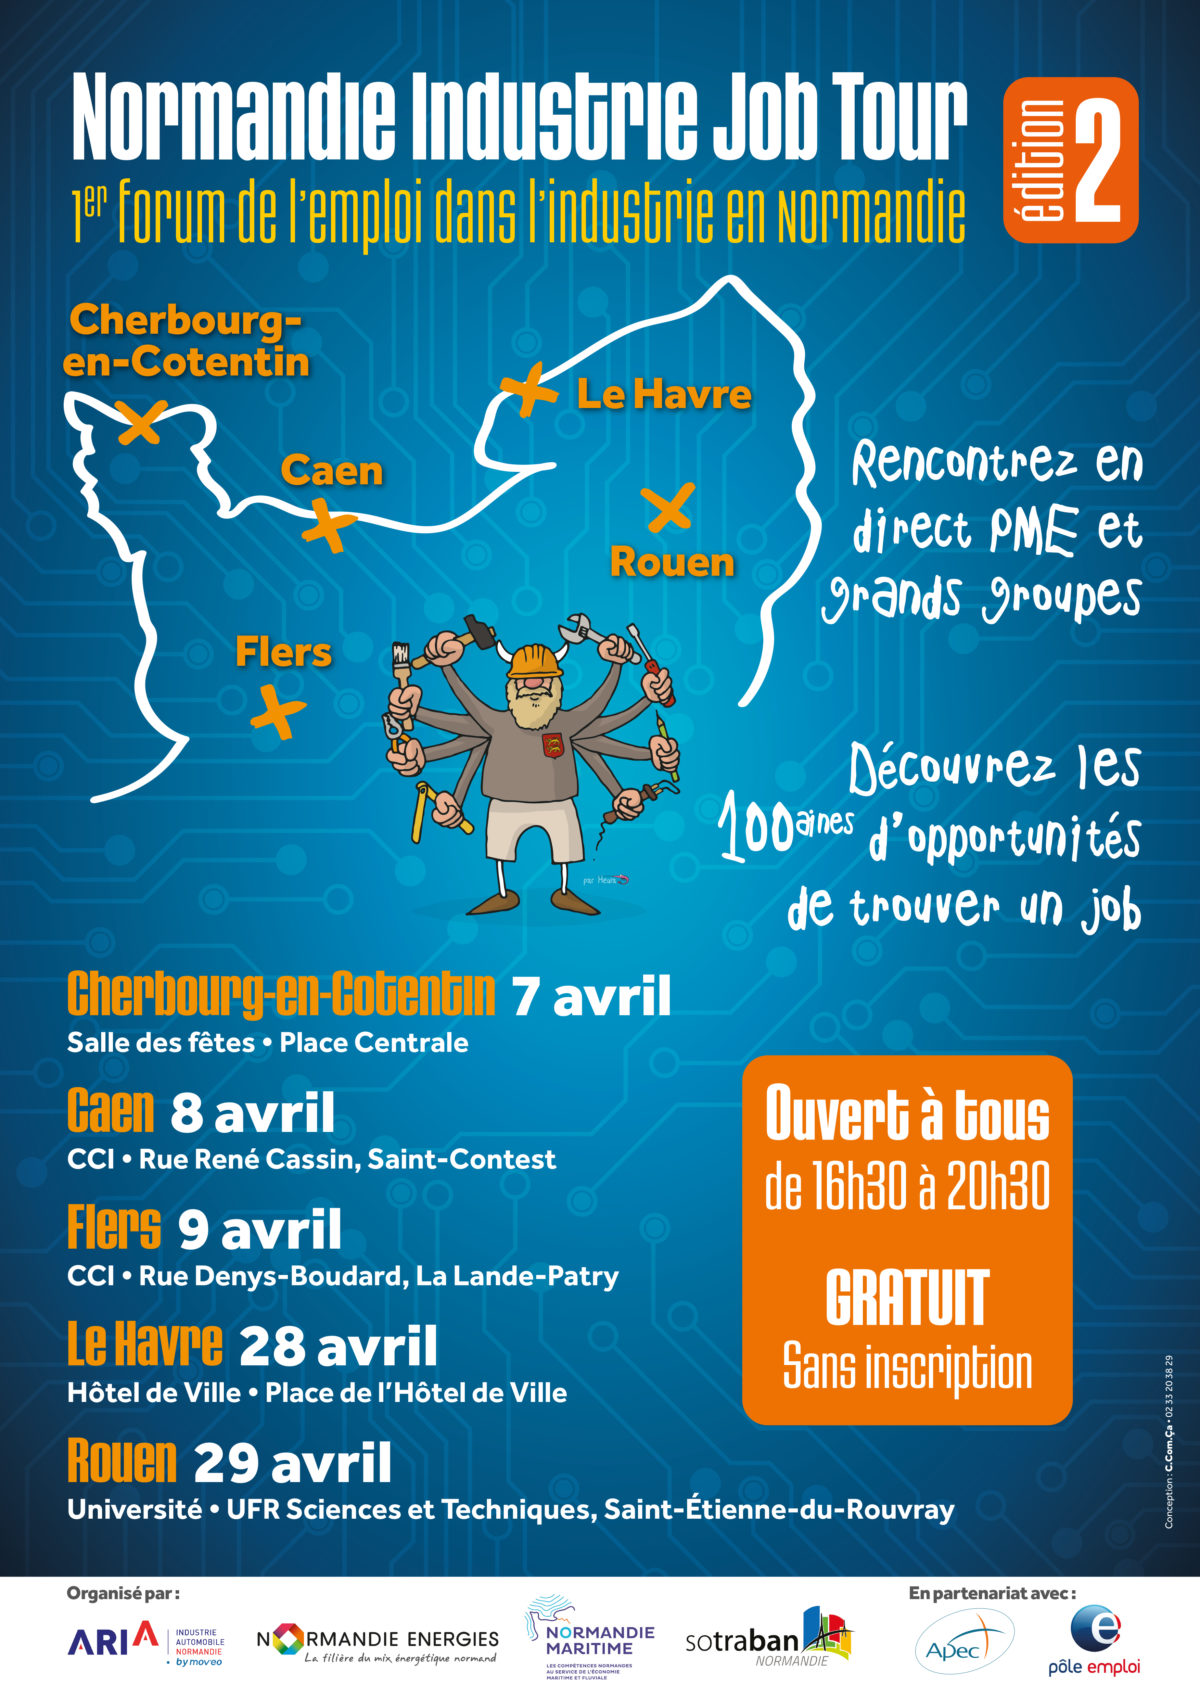 NOrmandie Industrie Job Tour 2020